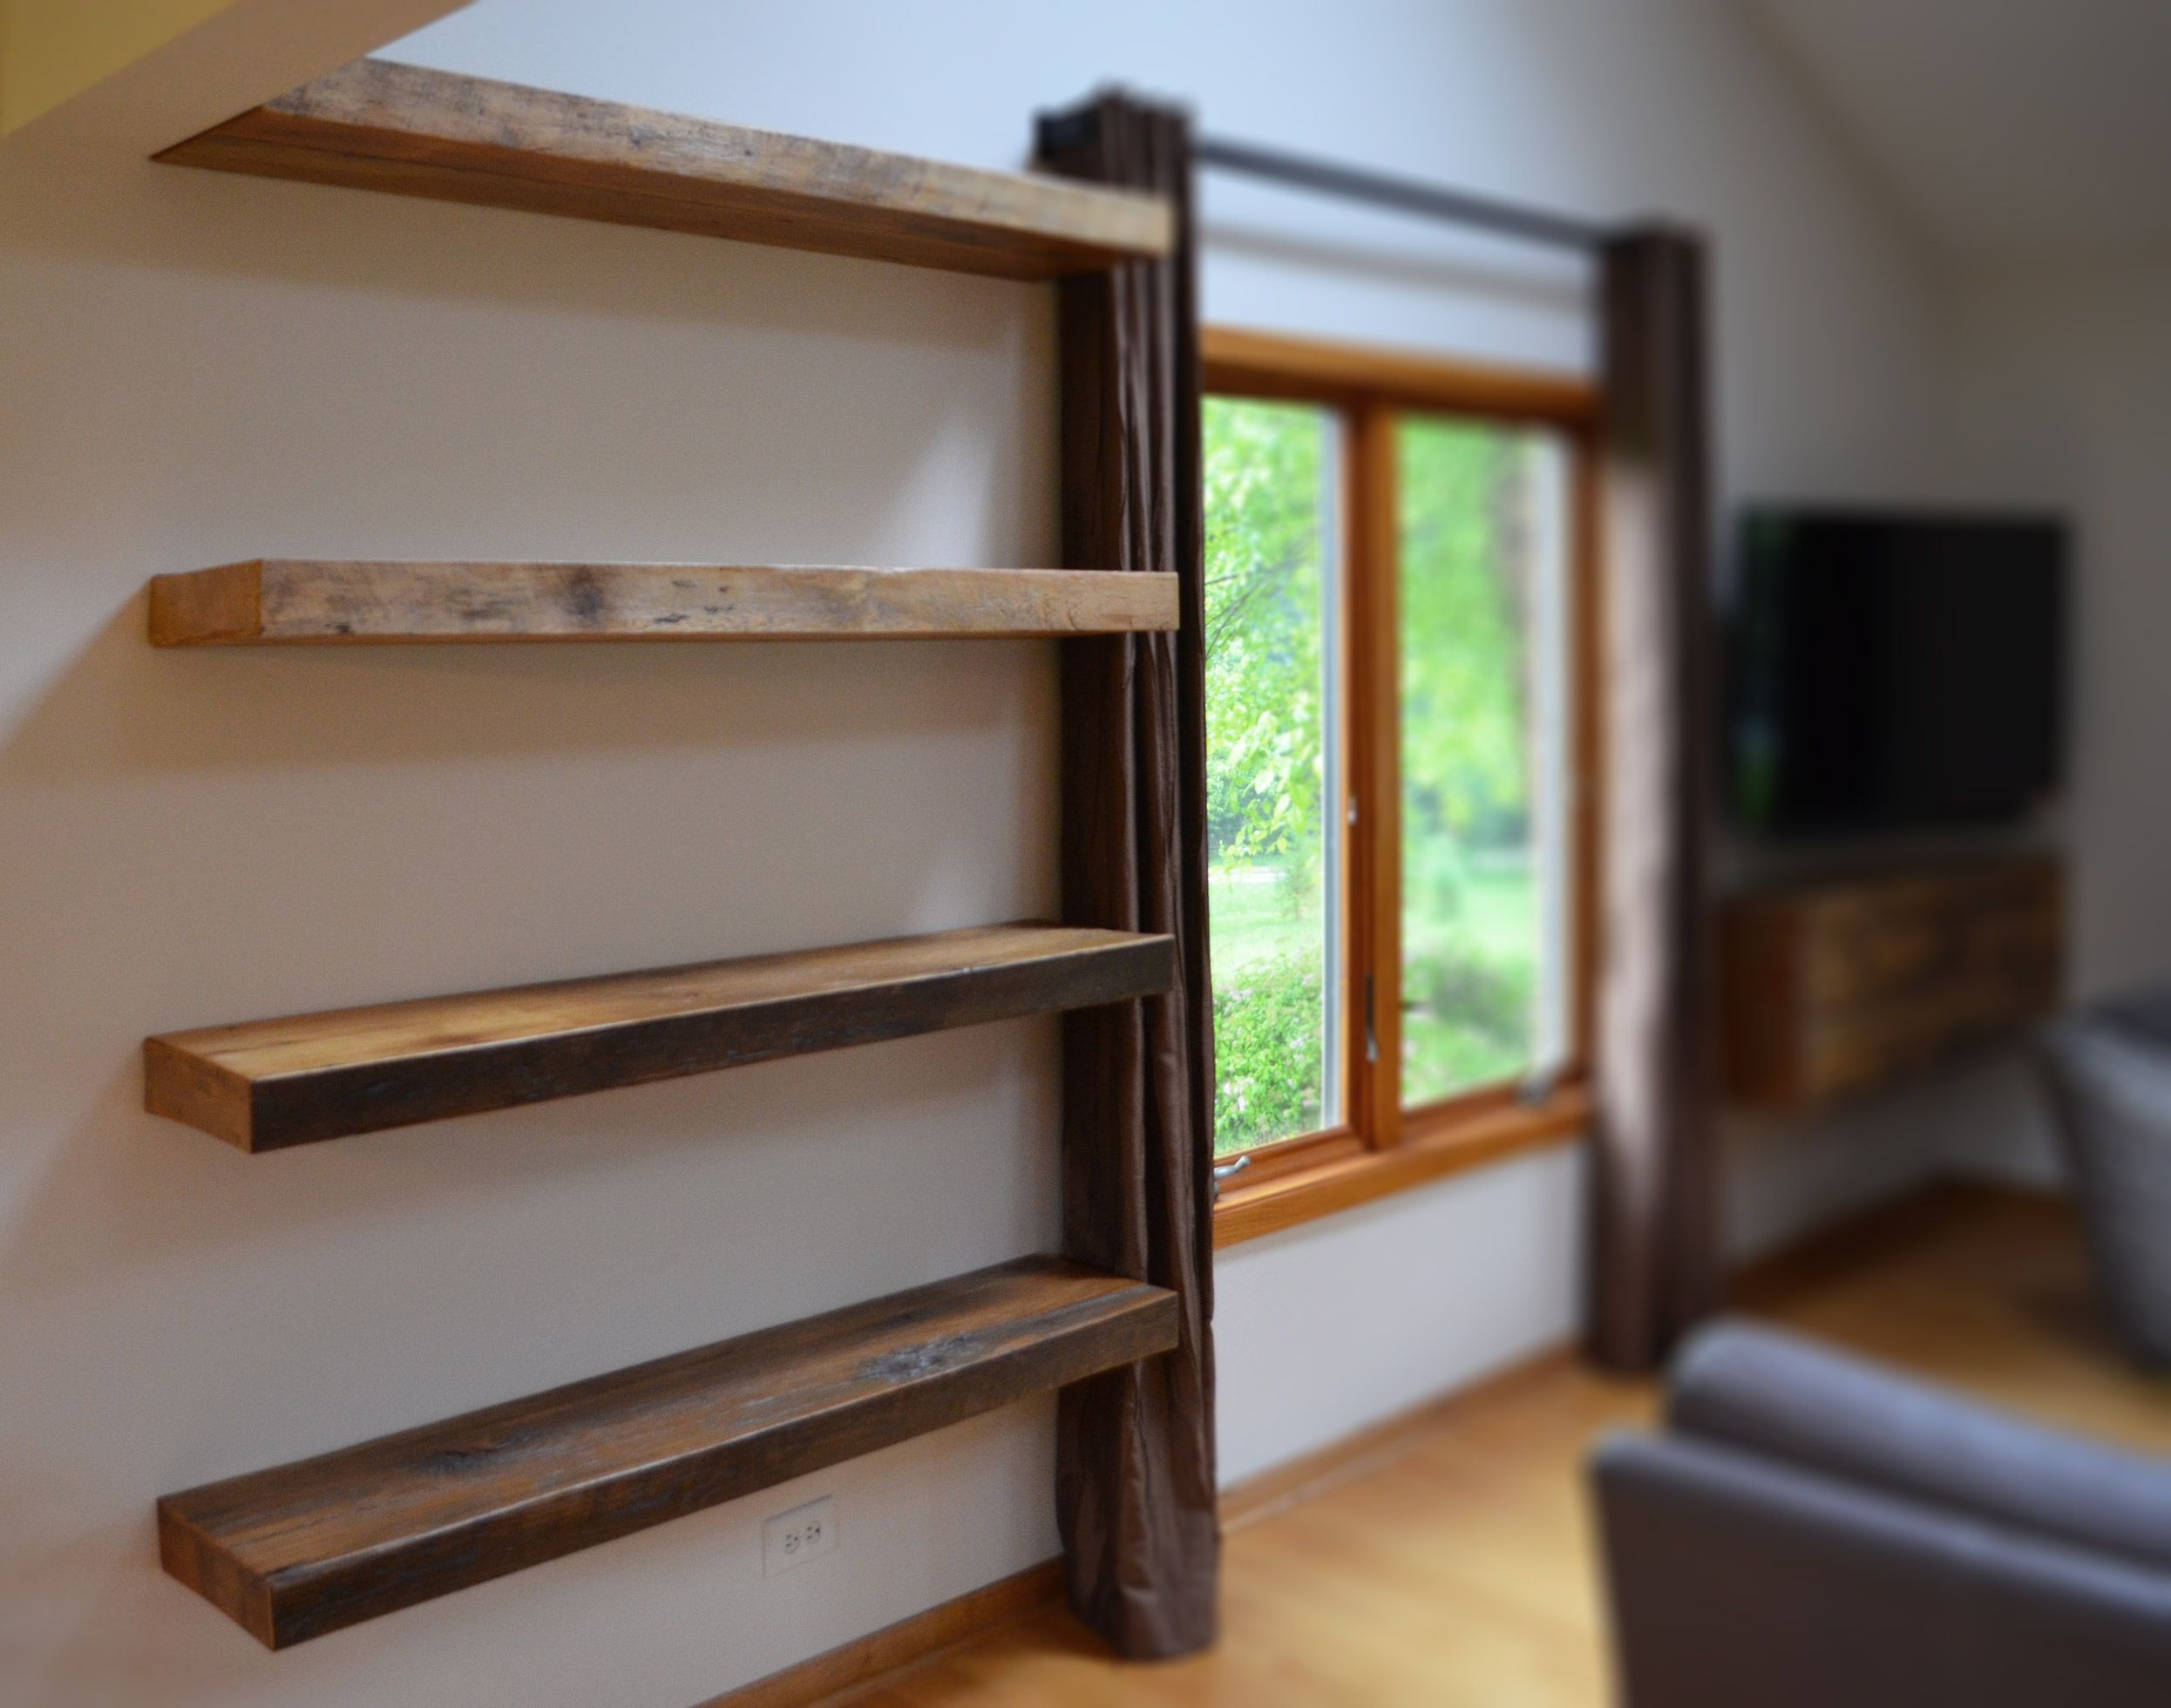 Hand Made Rustic Floating Shelves Abodeacious Custommade With Regard To Custom Floating Shelves (Image 13 of 15)